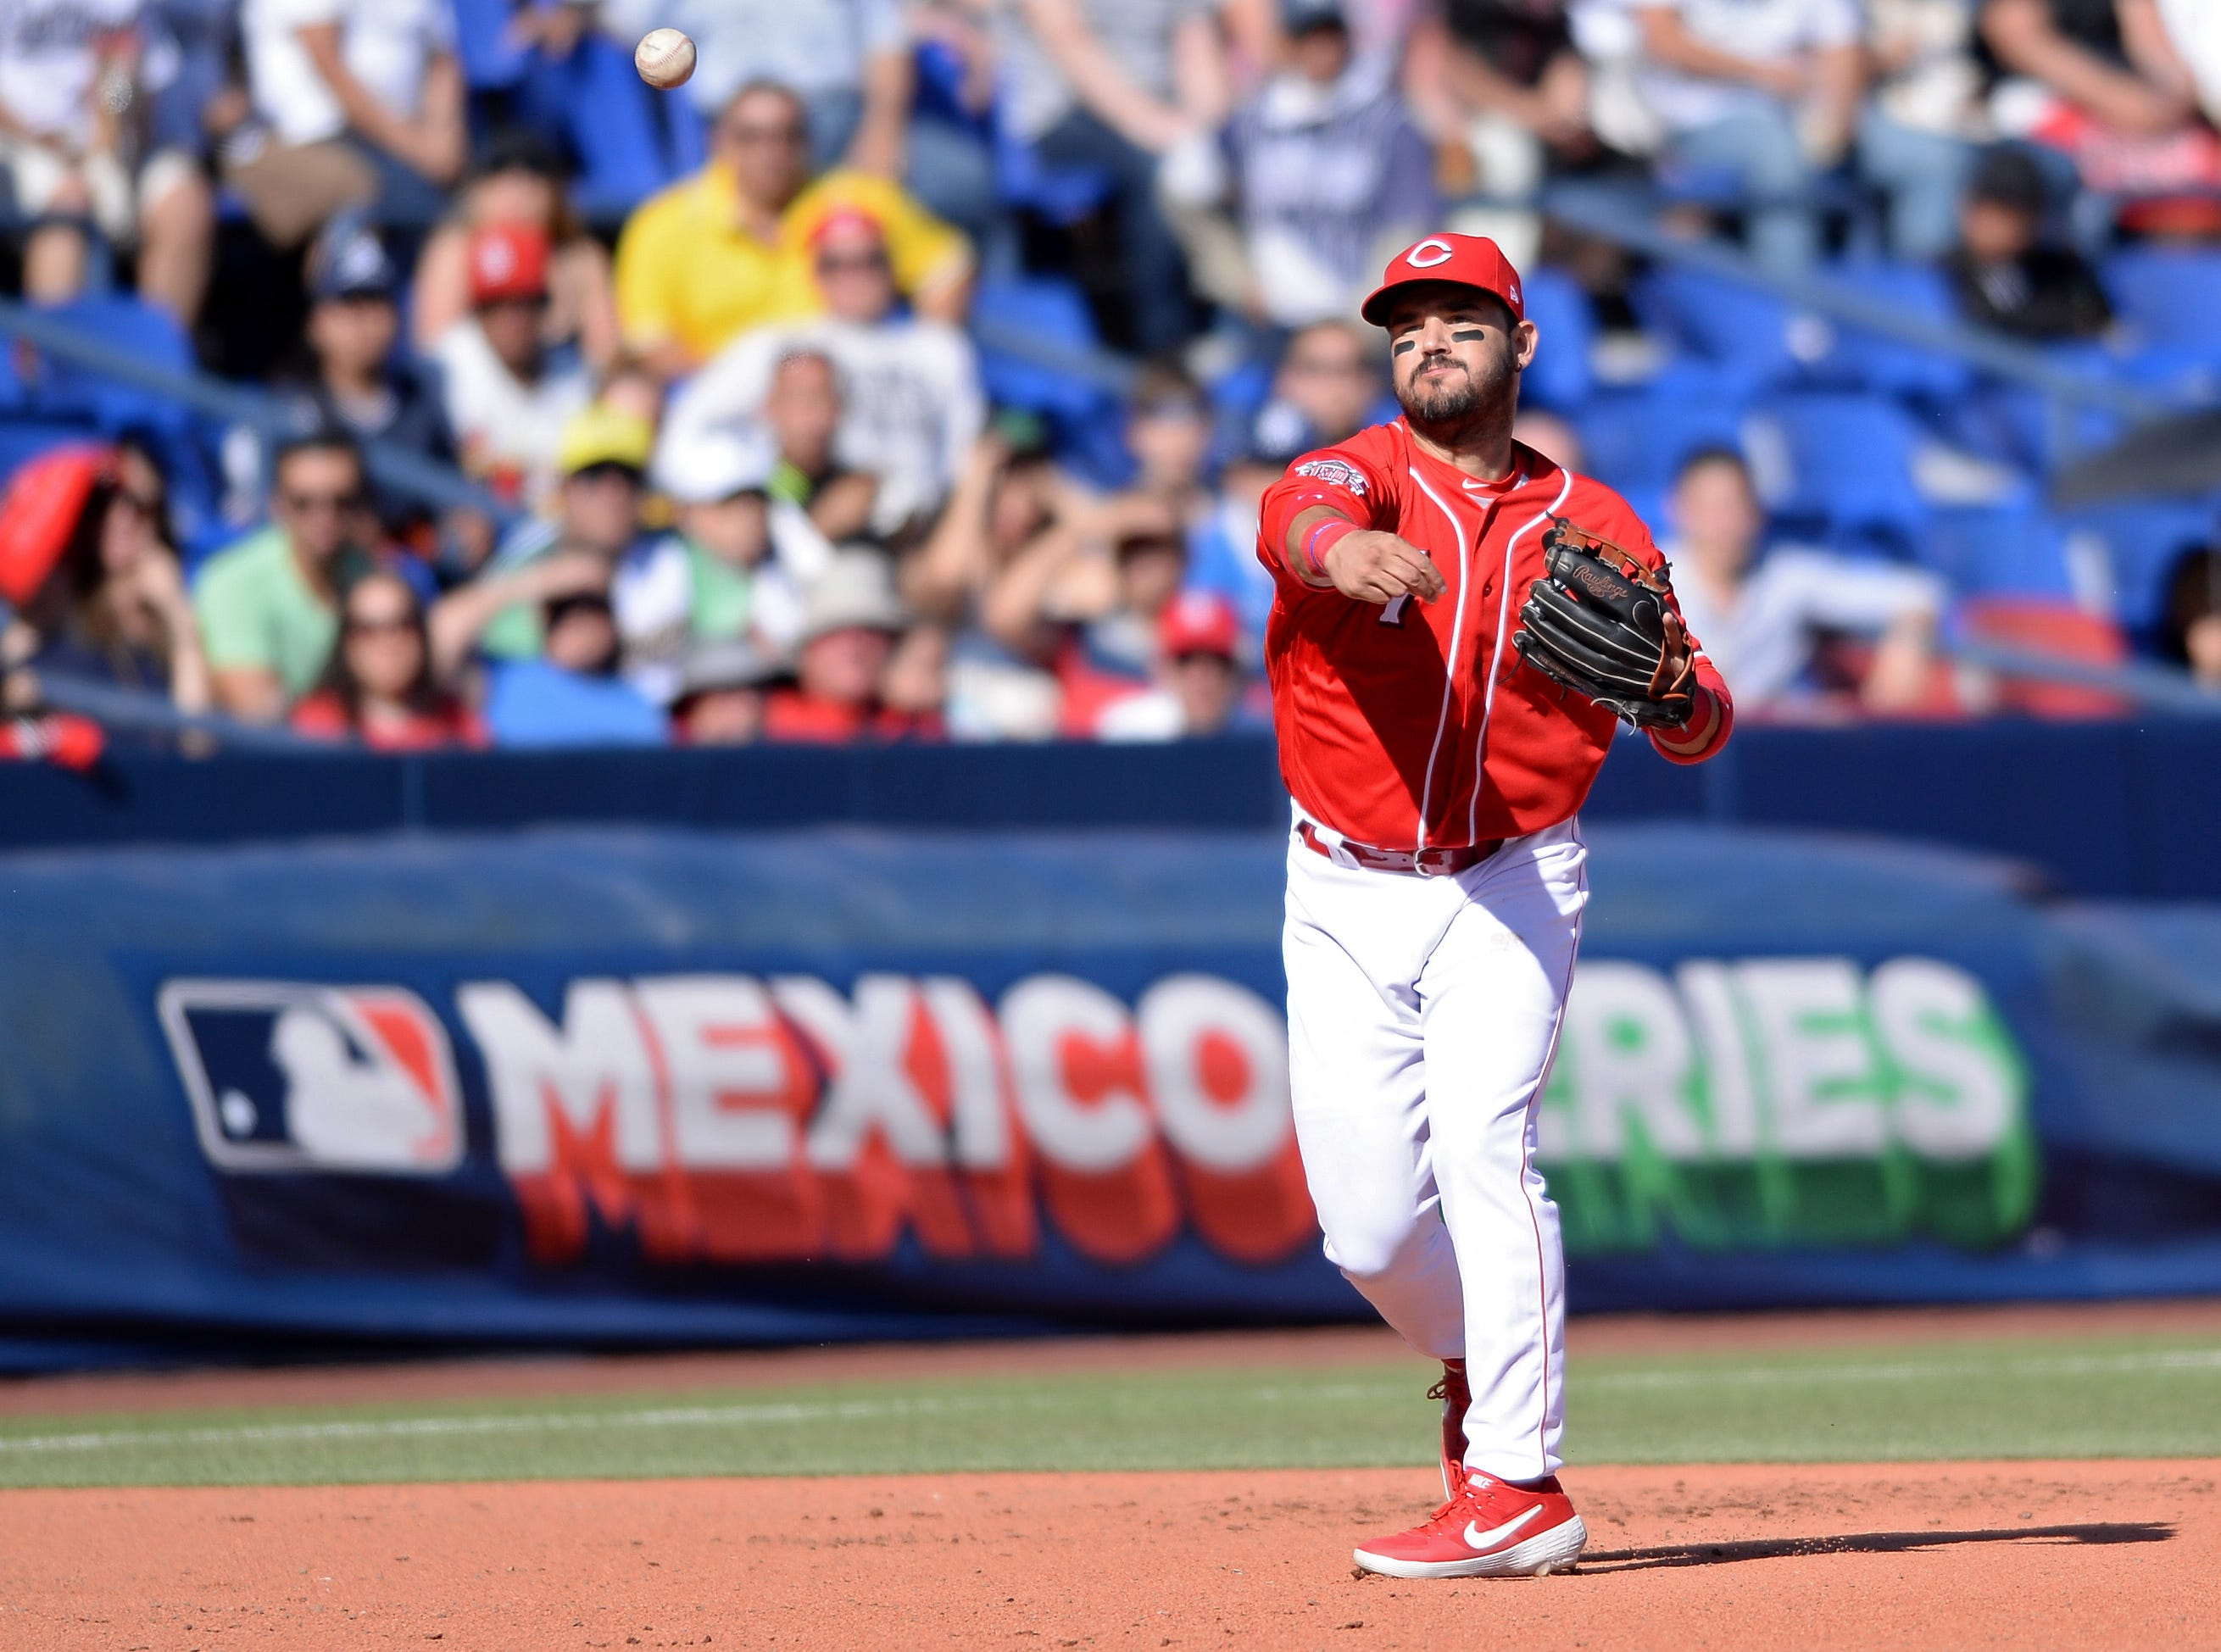 Cincinnati Reds third baseman Eugenio Suarez (7) throws to first base on a ground out by St. Louis Cardinals shortstop Paul DeJong (not pictured) during the seventh inning at Estadio de Beisbol Monterrey.